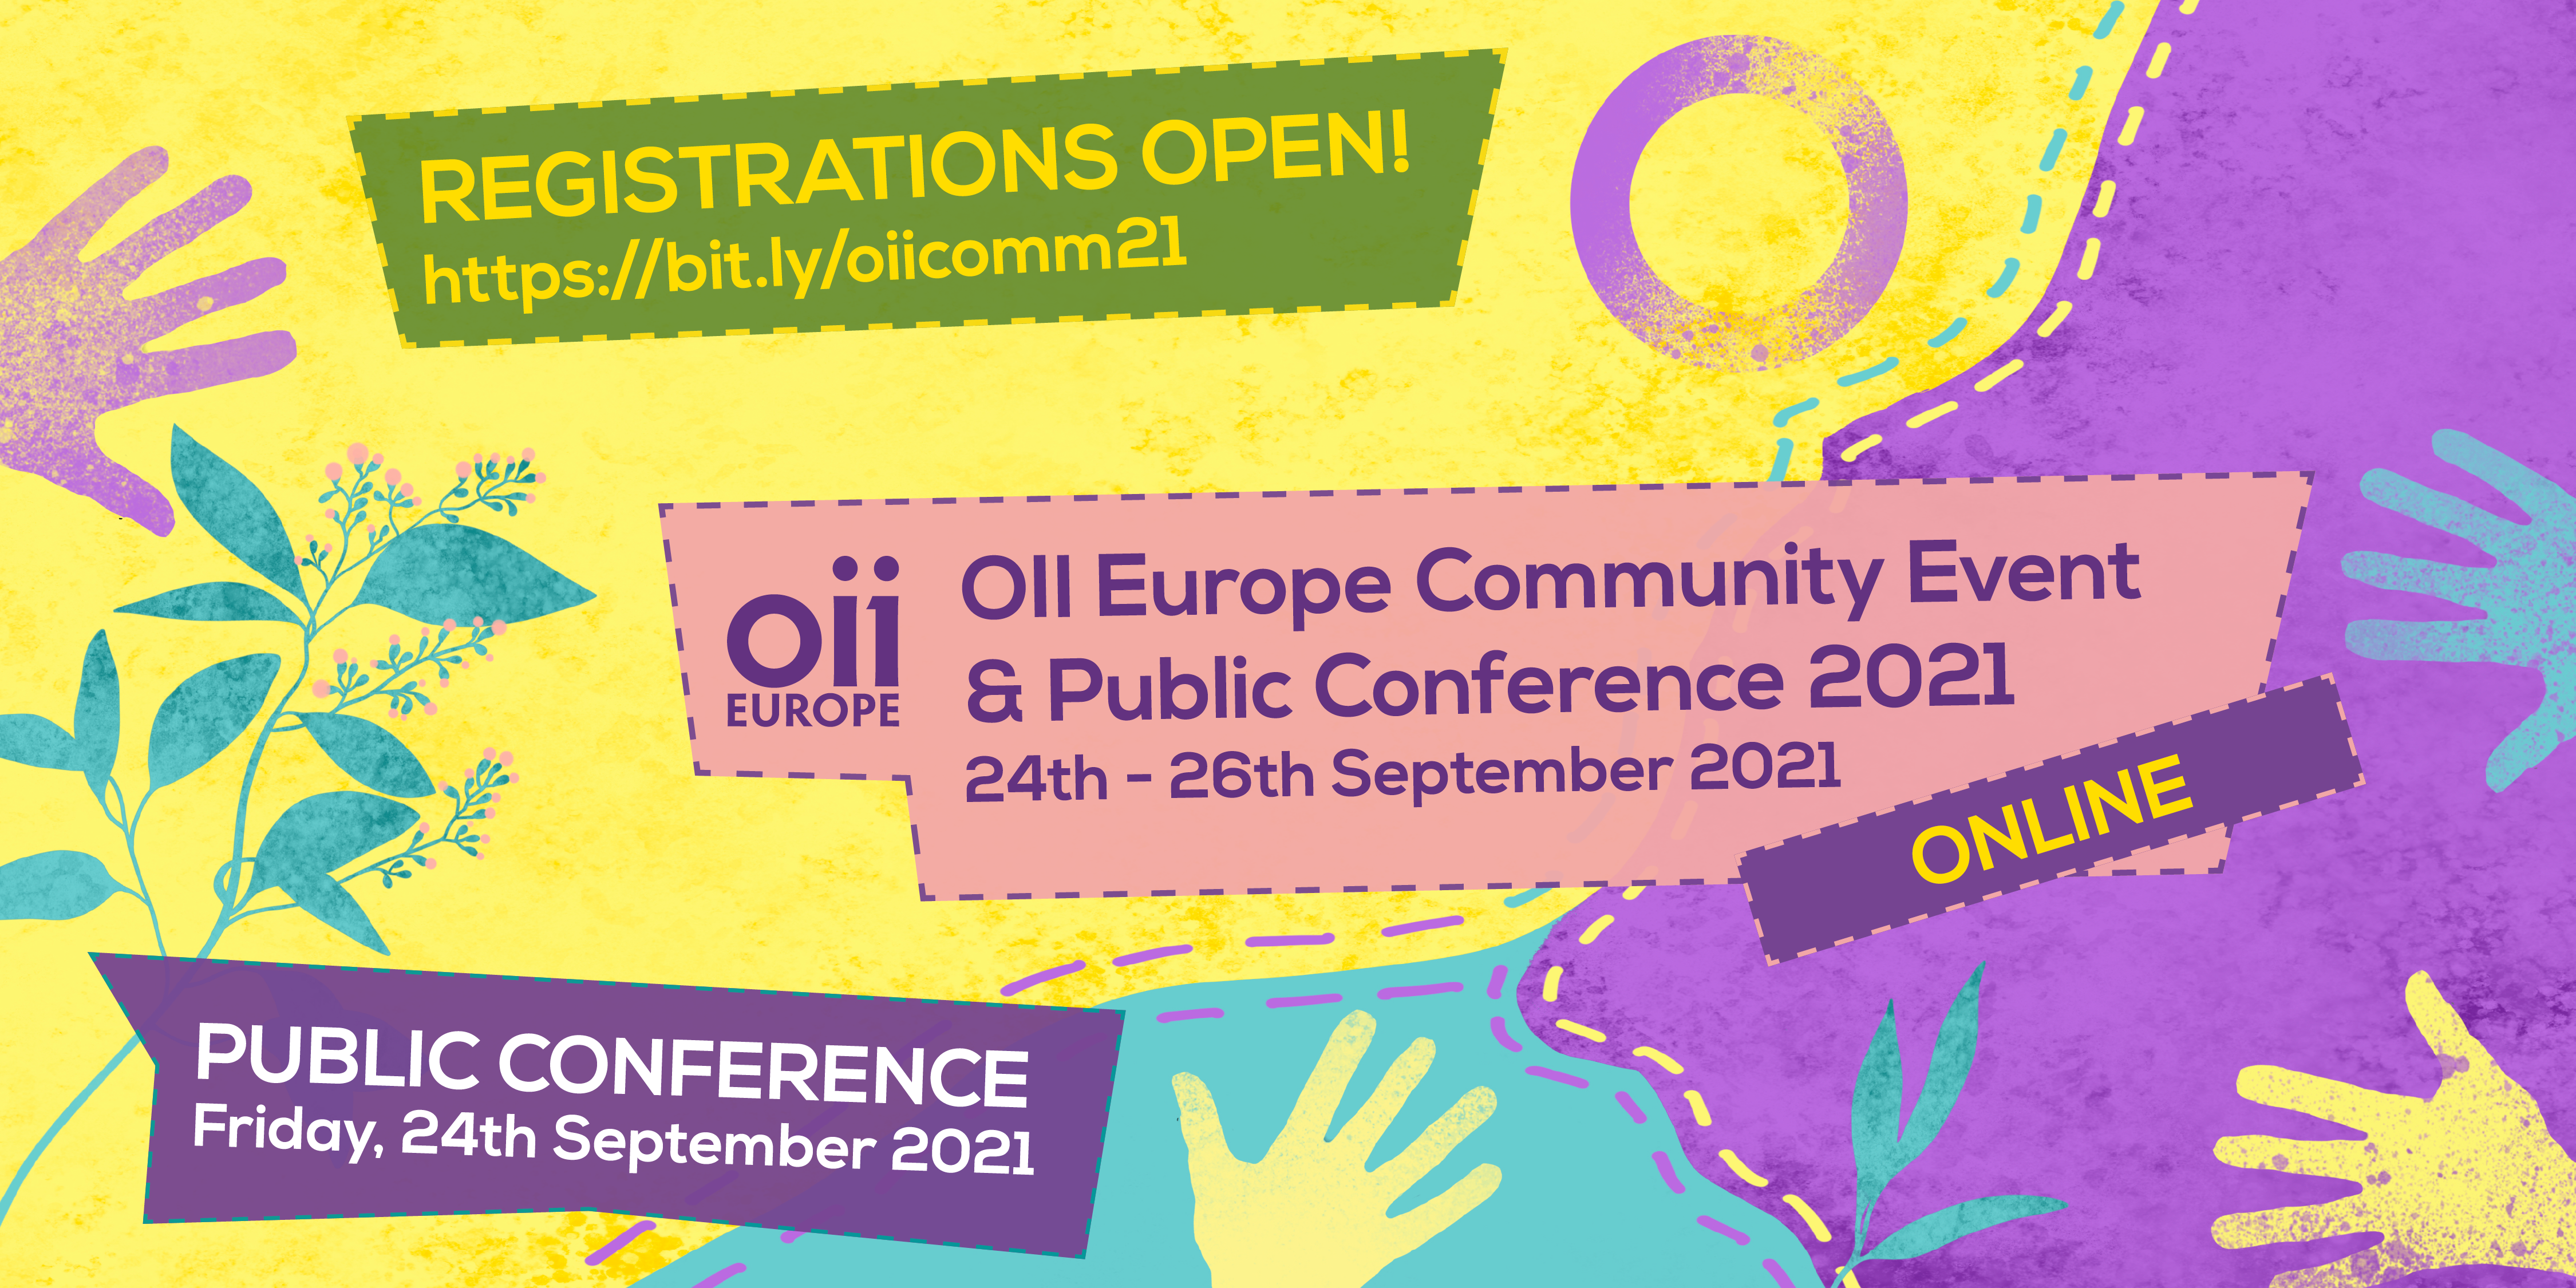 OII Europe Online Community Event and Public Conference 2021 Registration